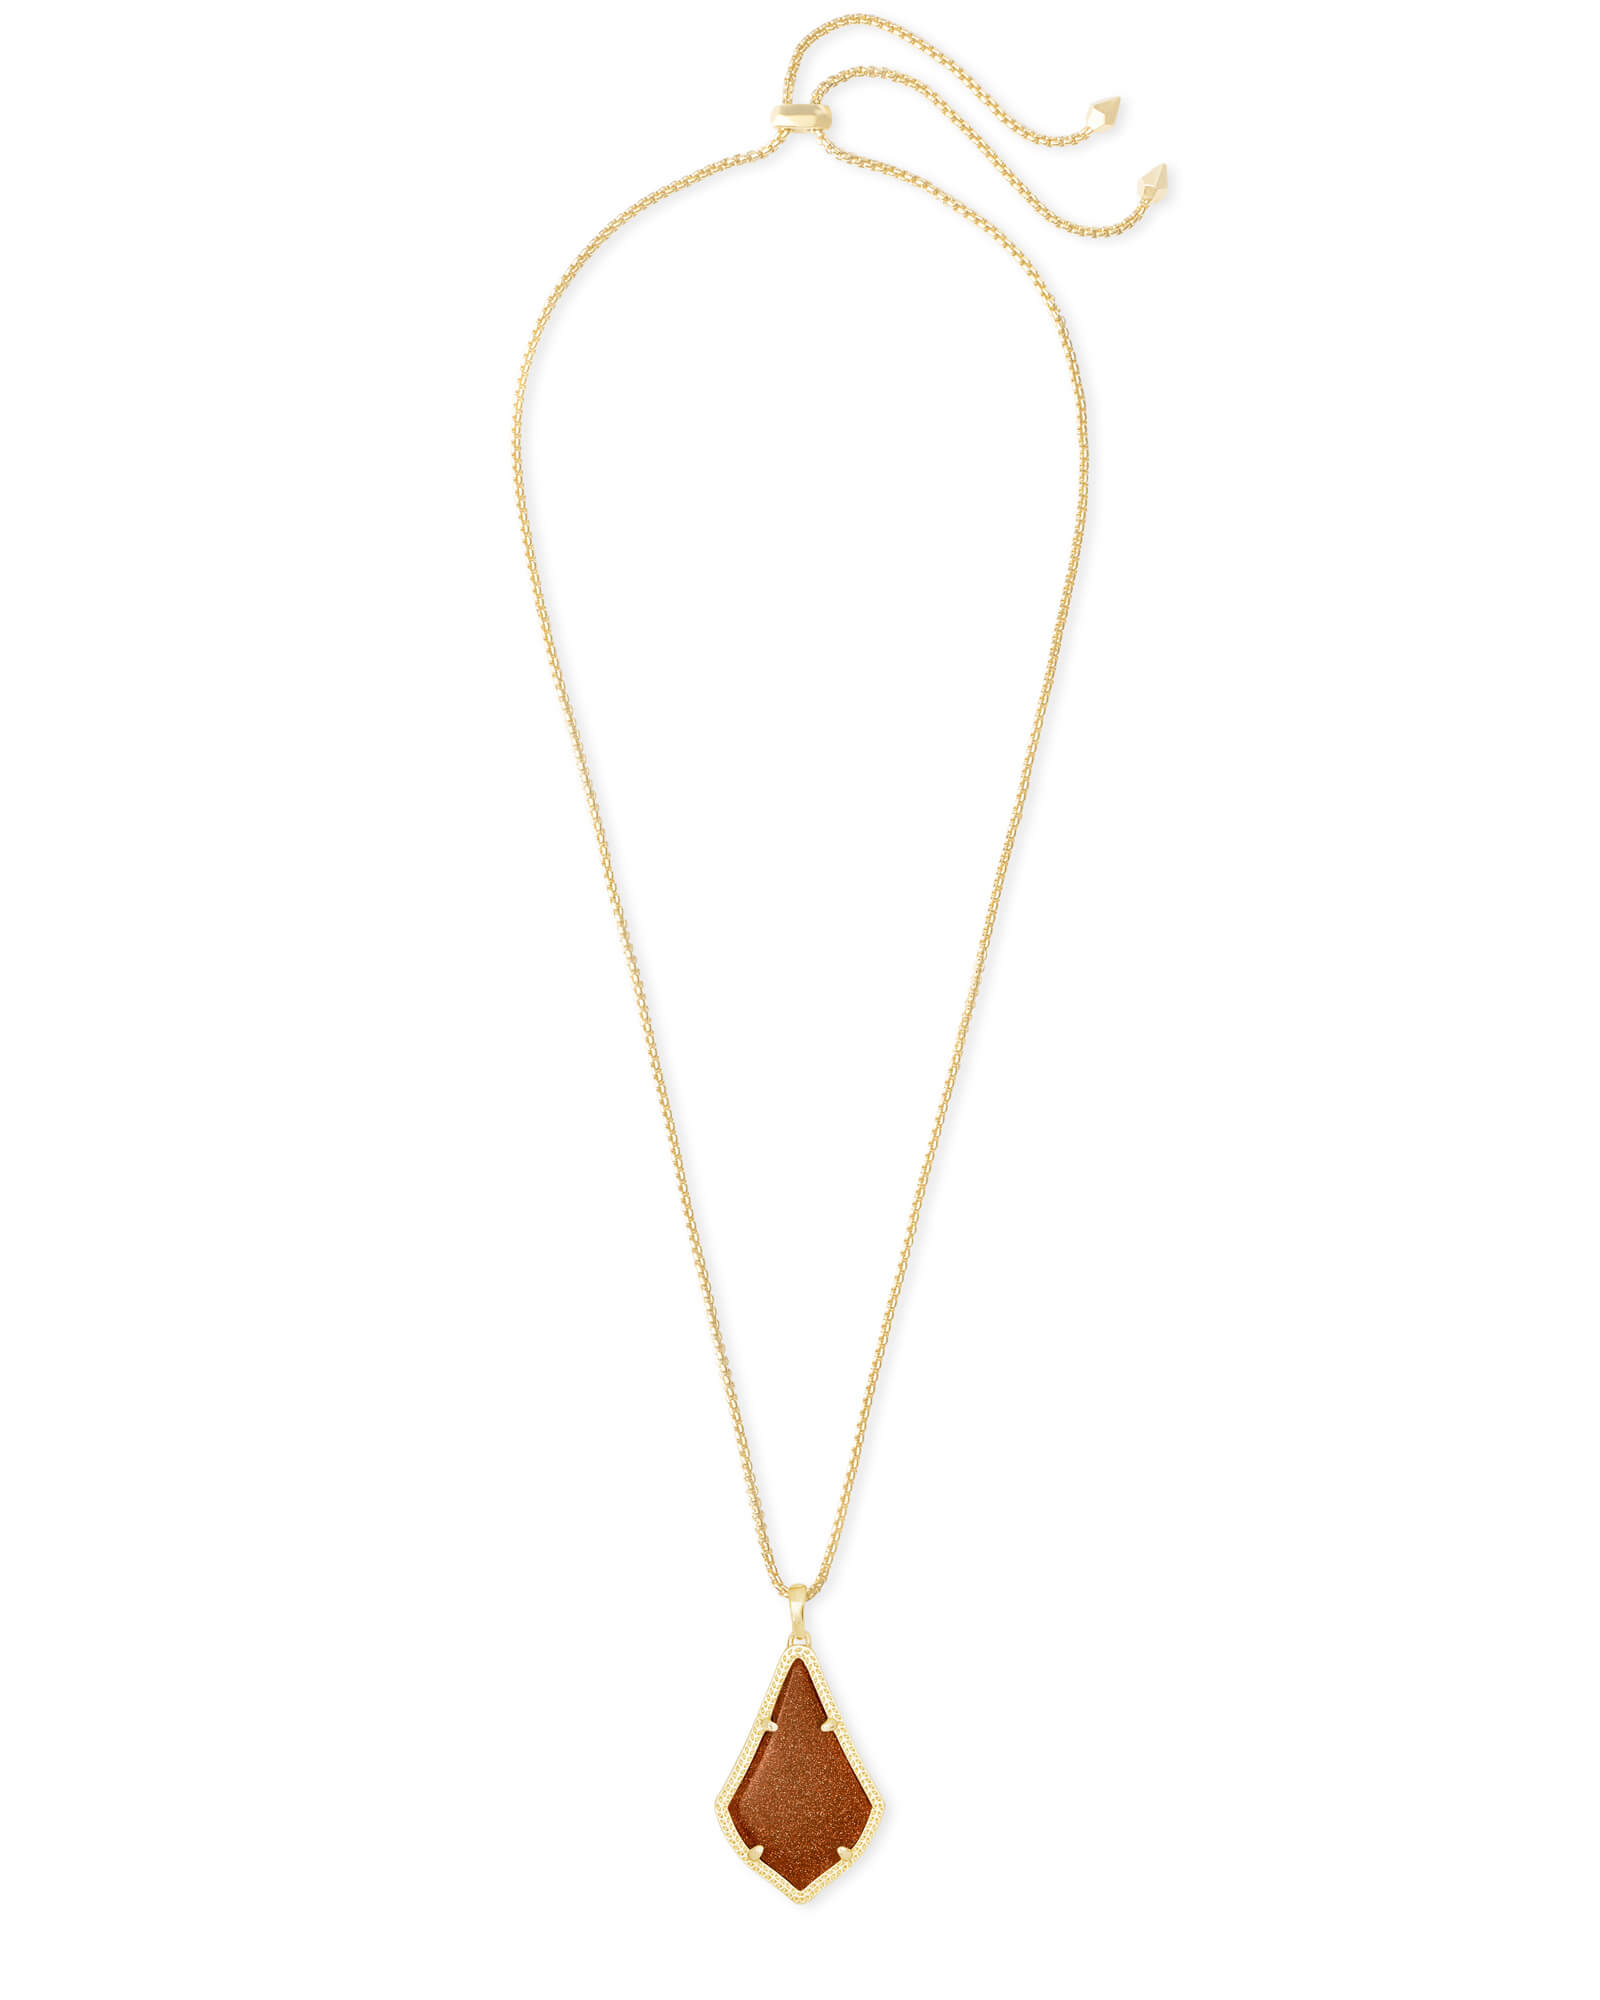 Alex Gold Pendant Necklace in Goldstone Glass